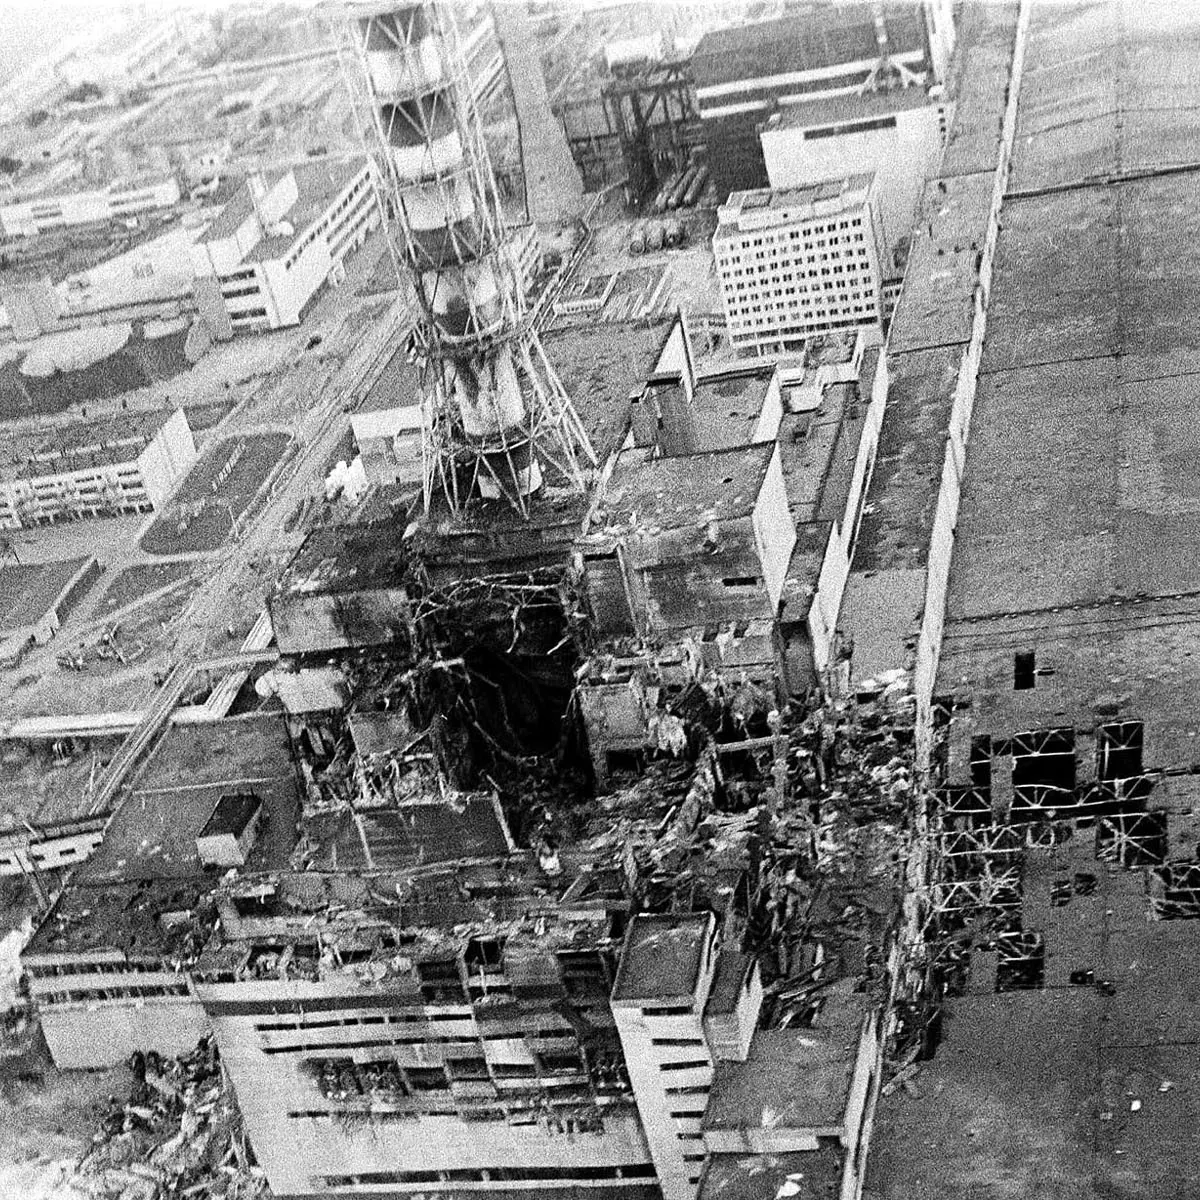 Image from the Chernobyl disaster.